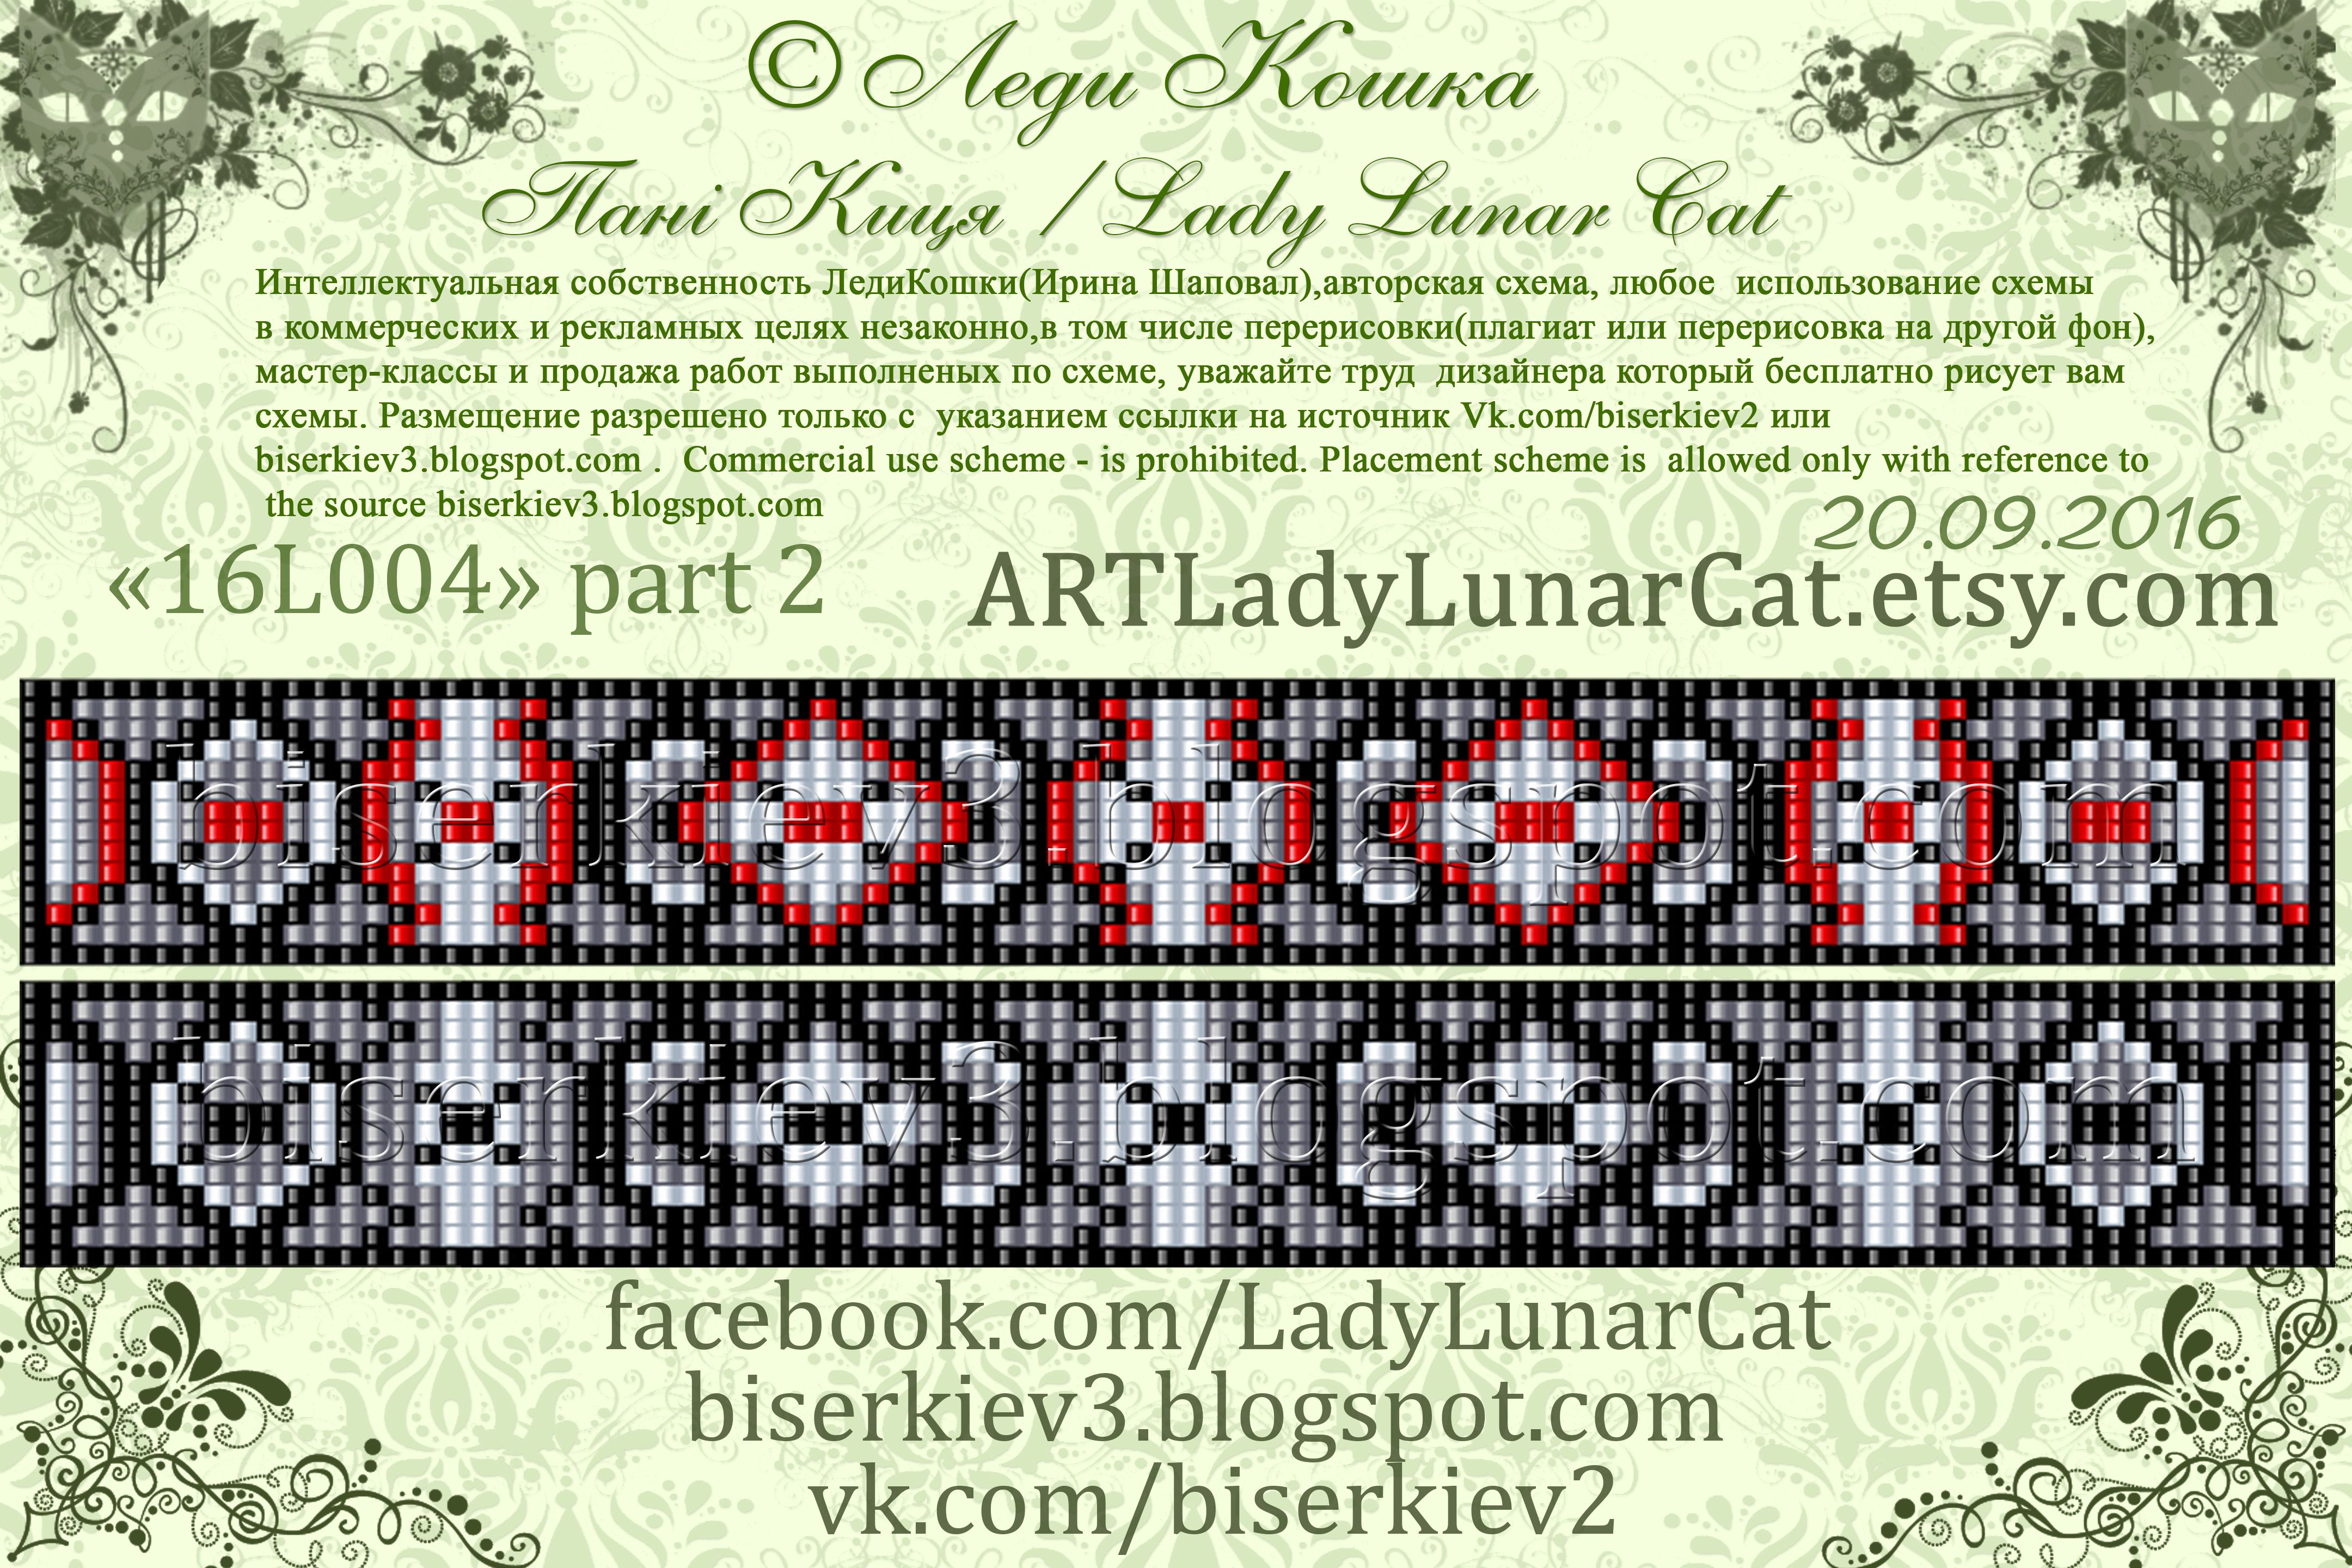 #LadyLunarCat #loom #pattern Author's design by Lady Lunar Cat. Any commercial use of the scheme - is prohibited . The scheme is only for your personal use. Placement schemes in the open sources is allowed only with the active link to the author and the author's blog biserkiev3.blogspot.com Авторский дизайн от Леди Кошки / Lady Lunar Cat. Коммерческое использование схемы - запрещено. Схема только для вашего личного использования.